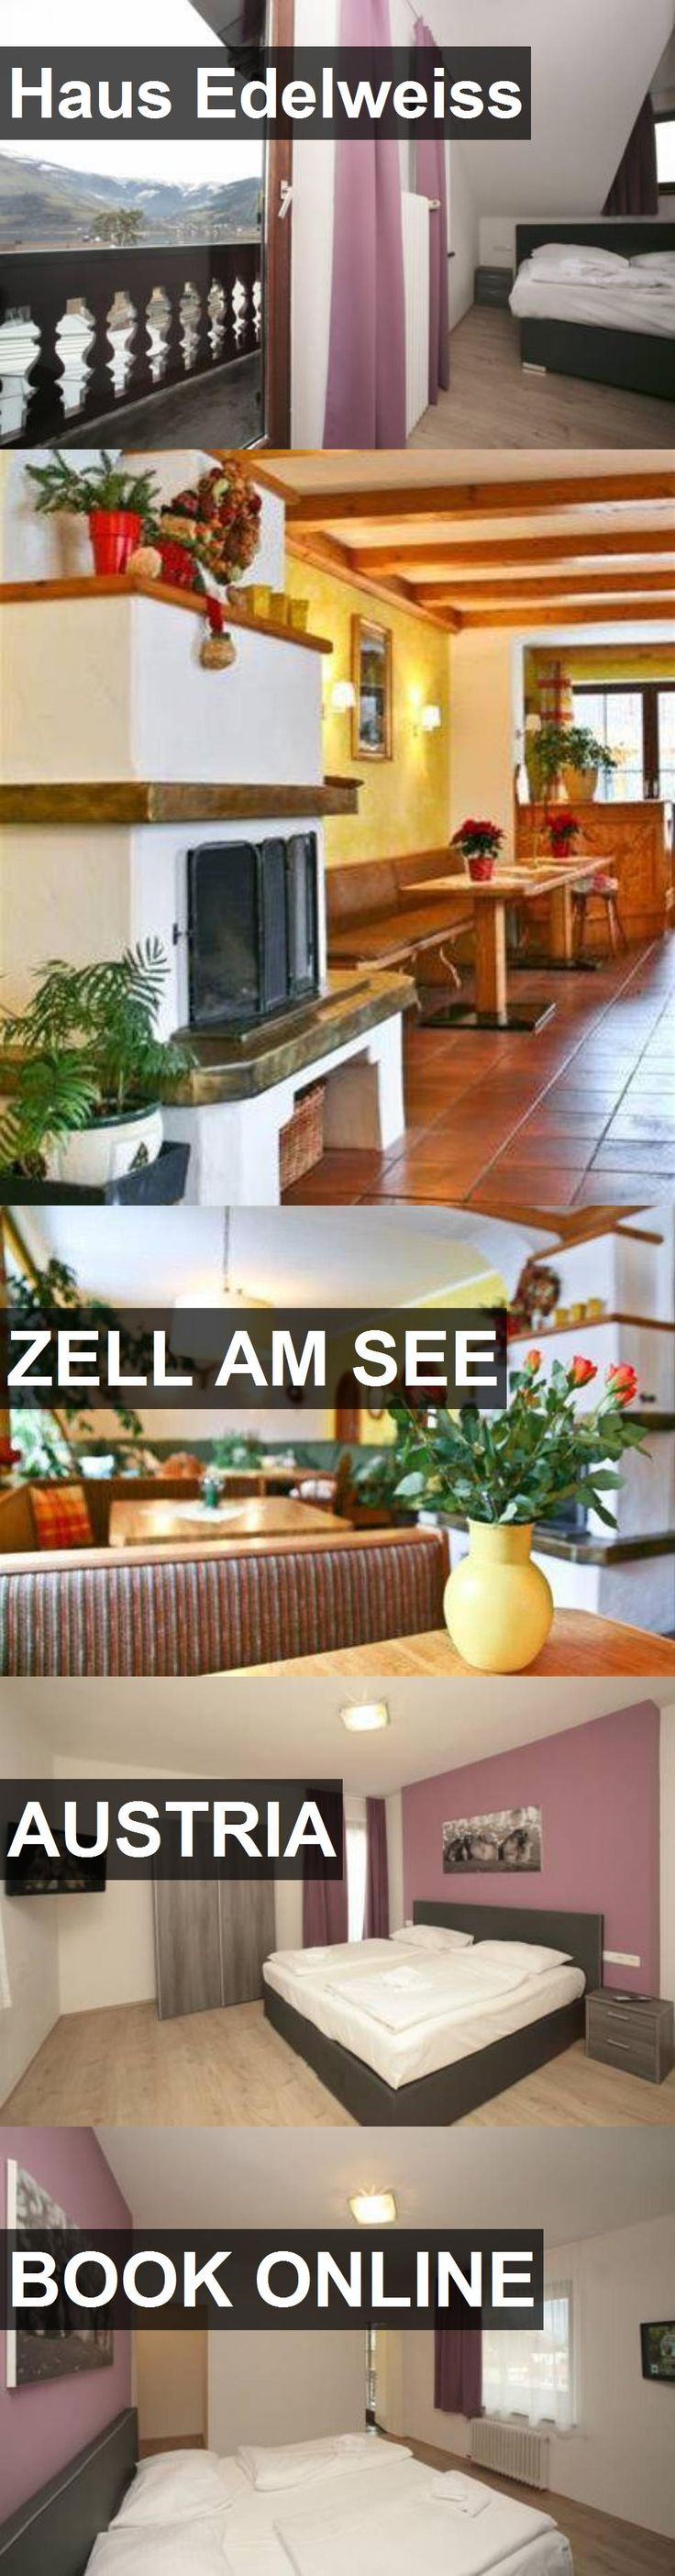 Hotel Haus Edelweiss in Zell am See, Austria. For more information, photos, reviews and best prices please follow the link. #Austria #ZellamSee #travel #vacation #hotel